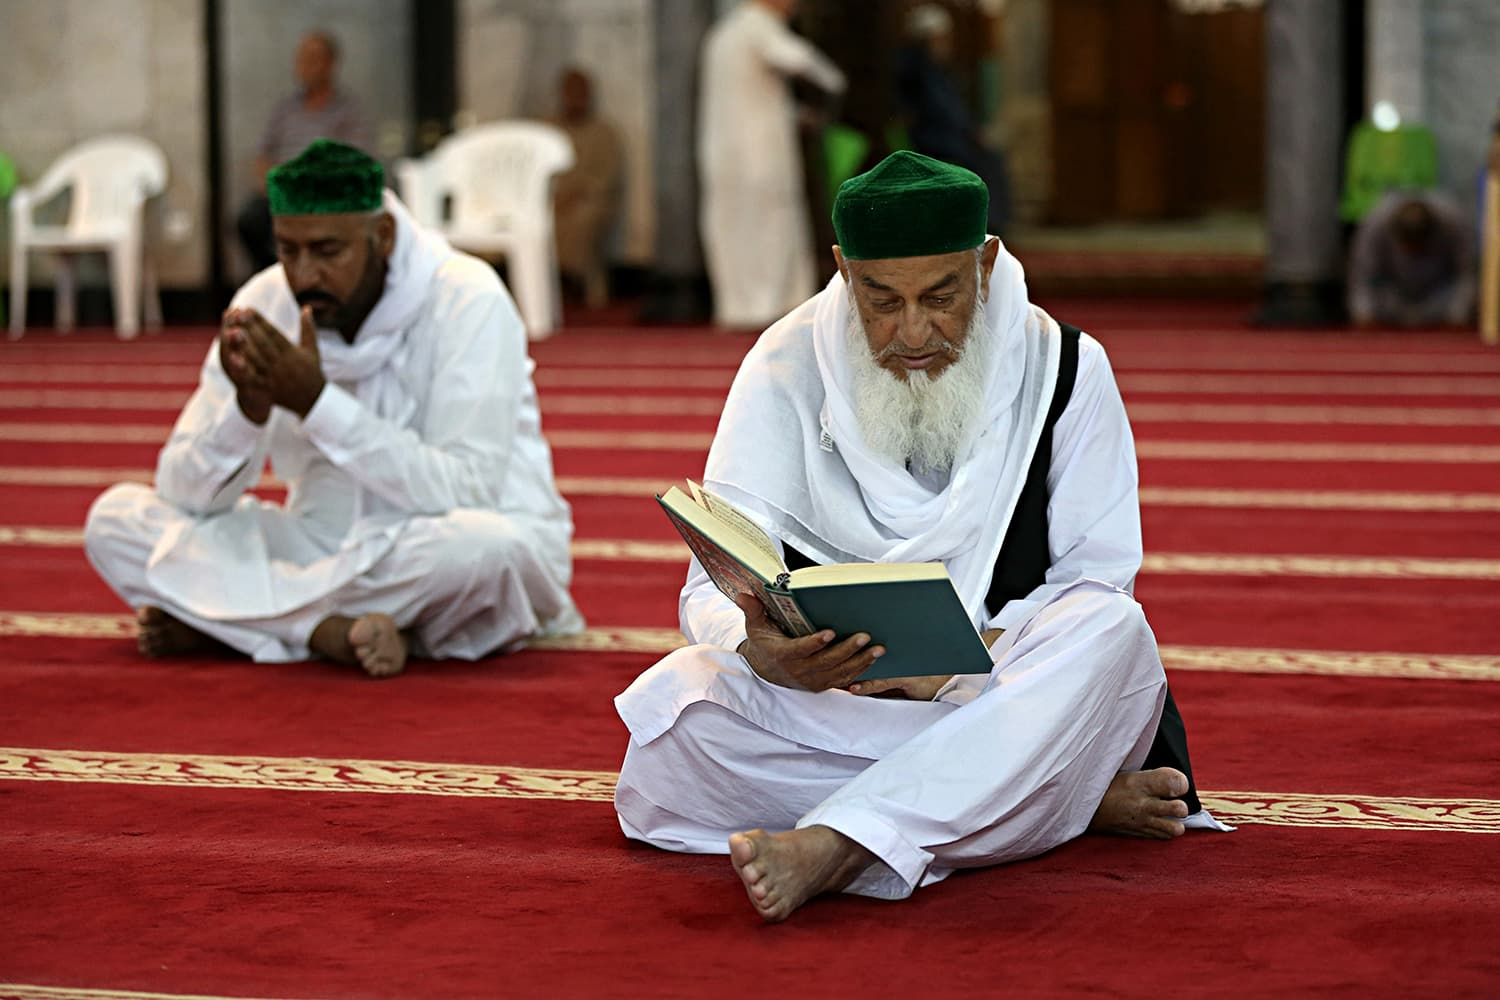 Muslim worshippers read the Quran at Abdul-Qadir al-Gailani mosque in Baghdad, Iraq on Wednesday. — AP